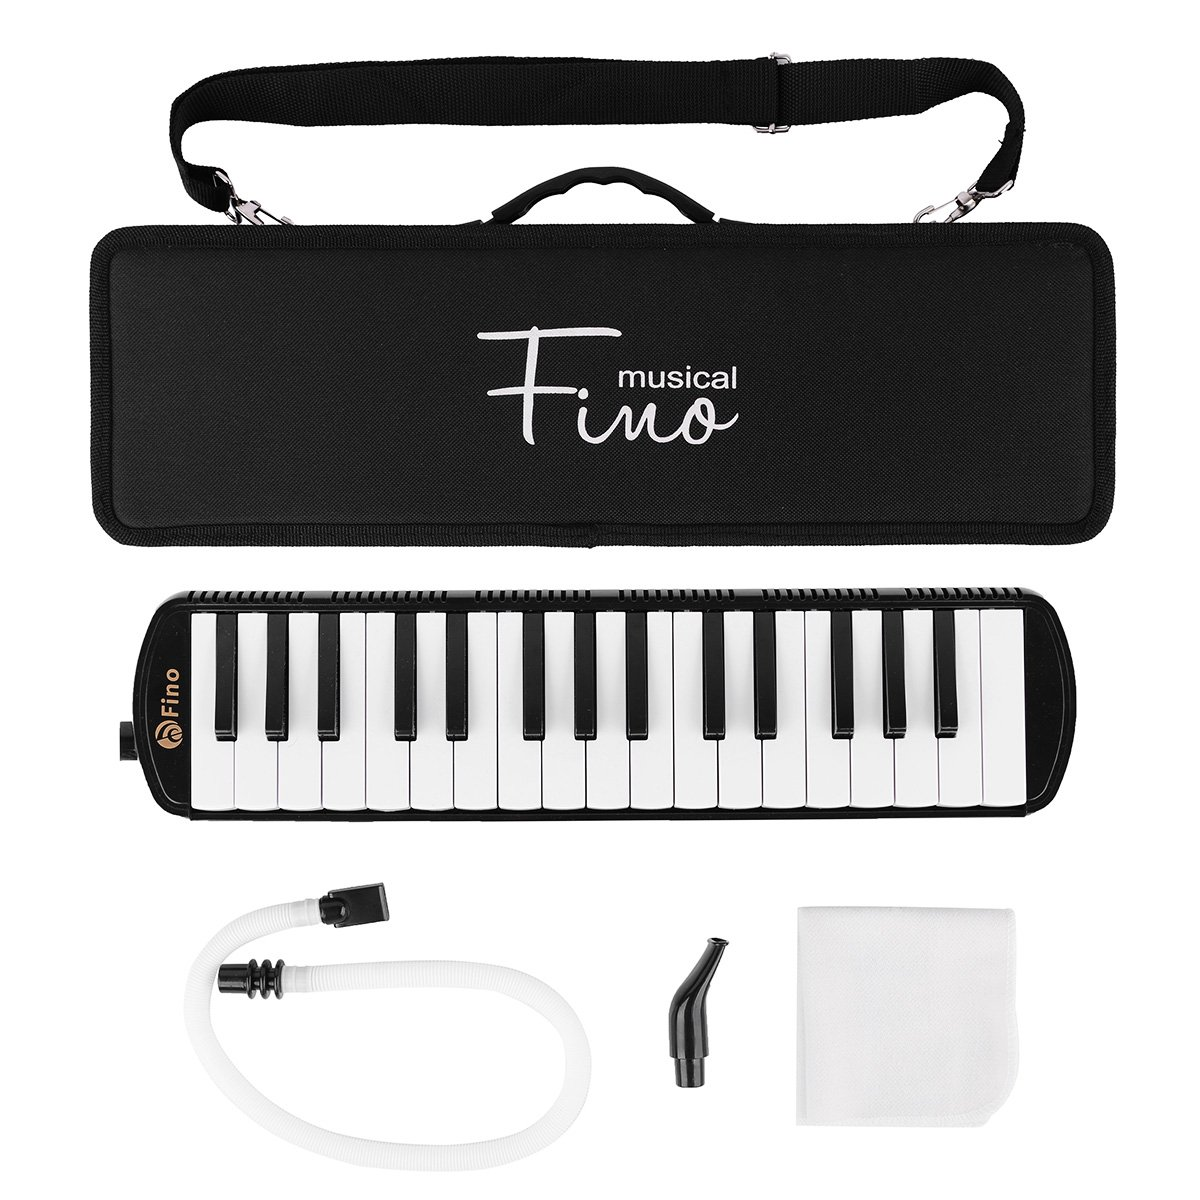 32 Piano Keys Melodica FINO Keyboards Pianica Wind Musical Instrument with Mouthpiece Tube Set Portable for Music Lovers Beginners Gift with Carrying Bag,Black